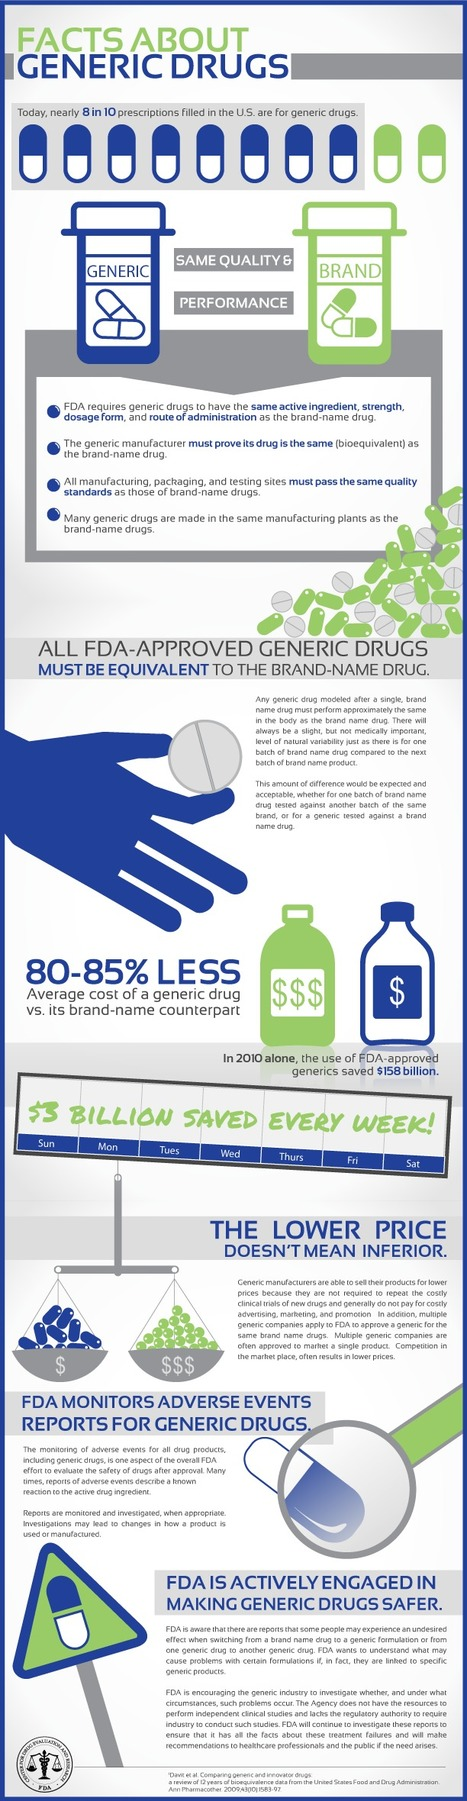 Facts About Generic Drugs Infographic | Heart and Vascular Health | Scoop.it